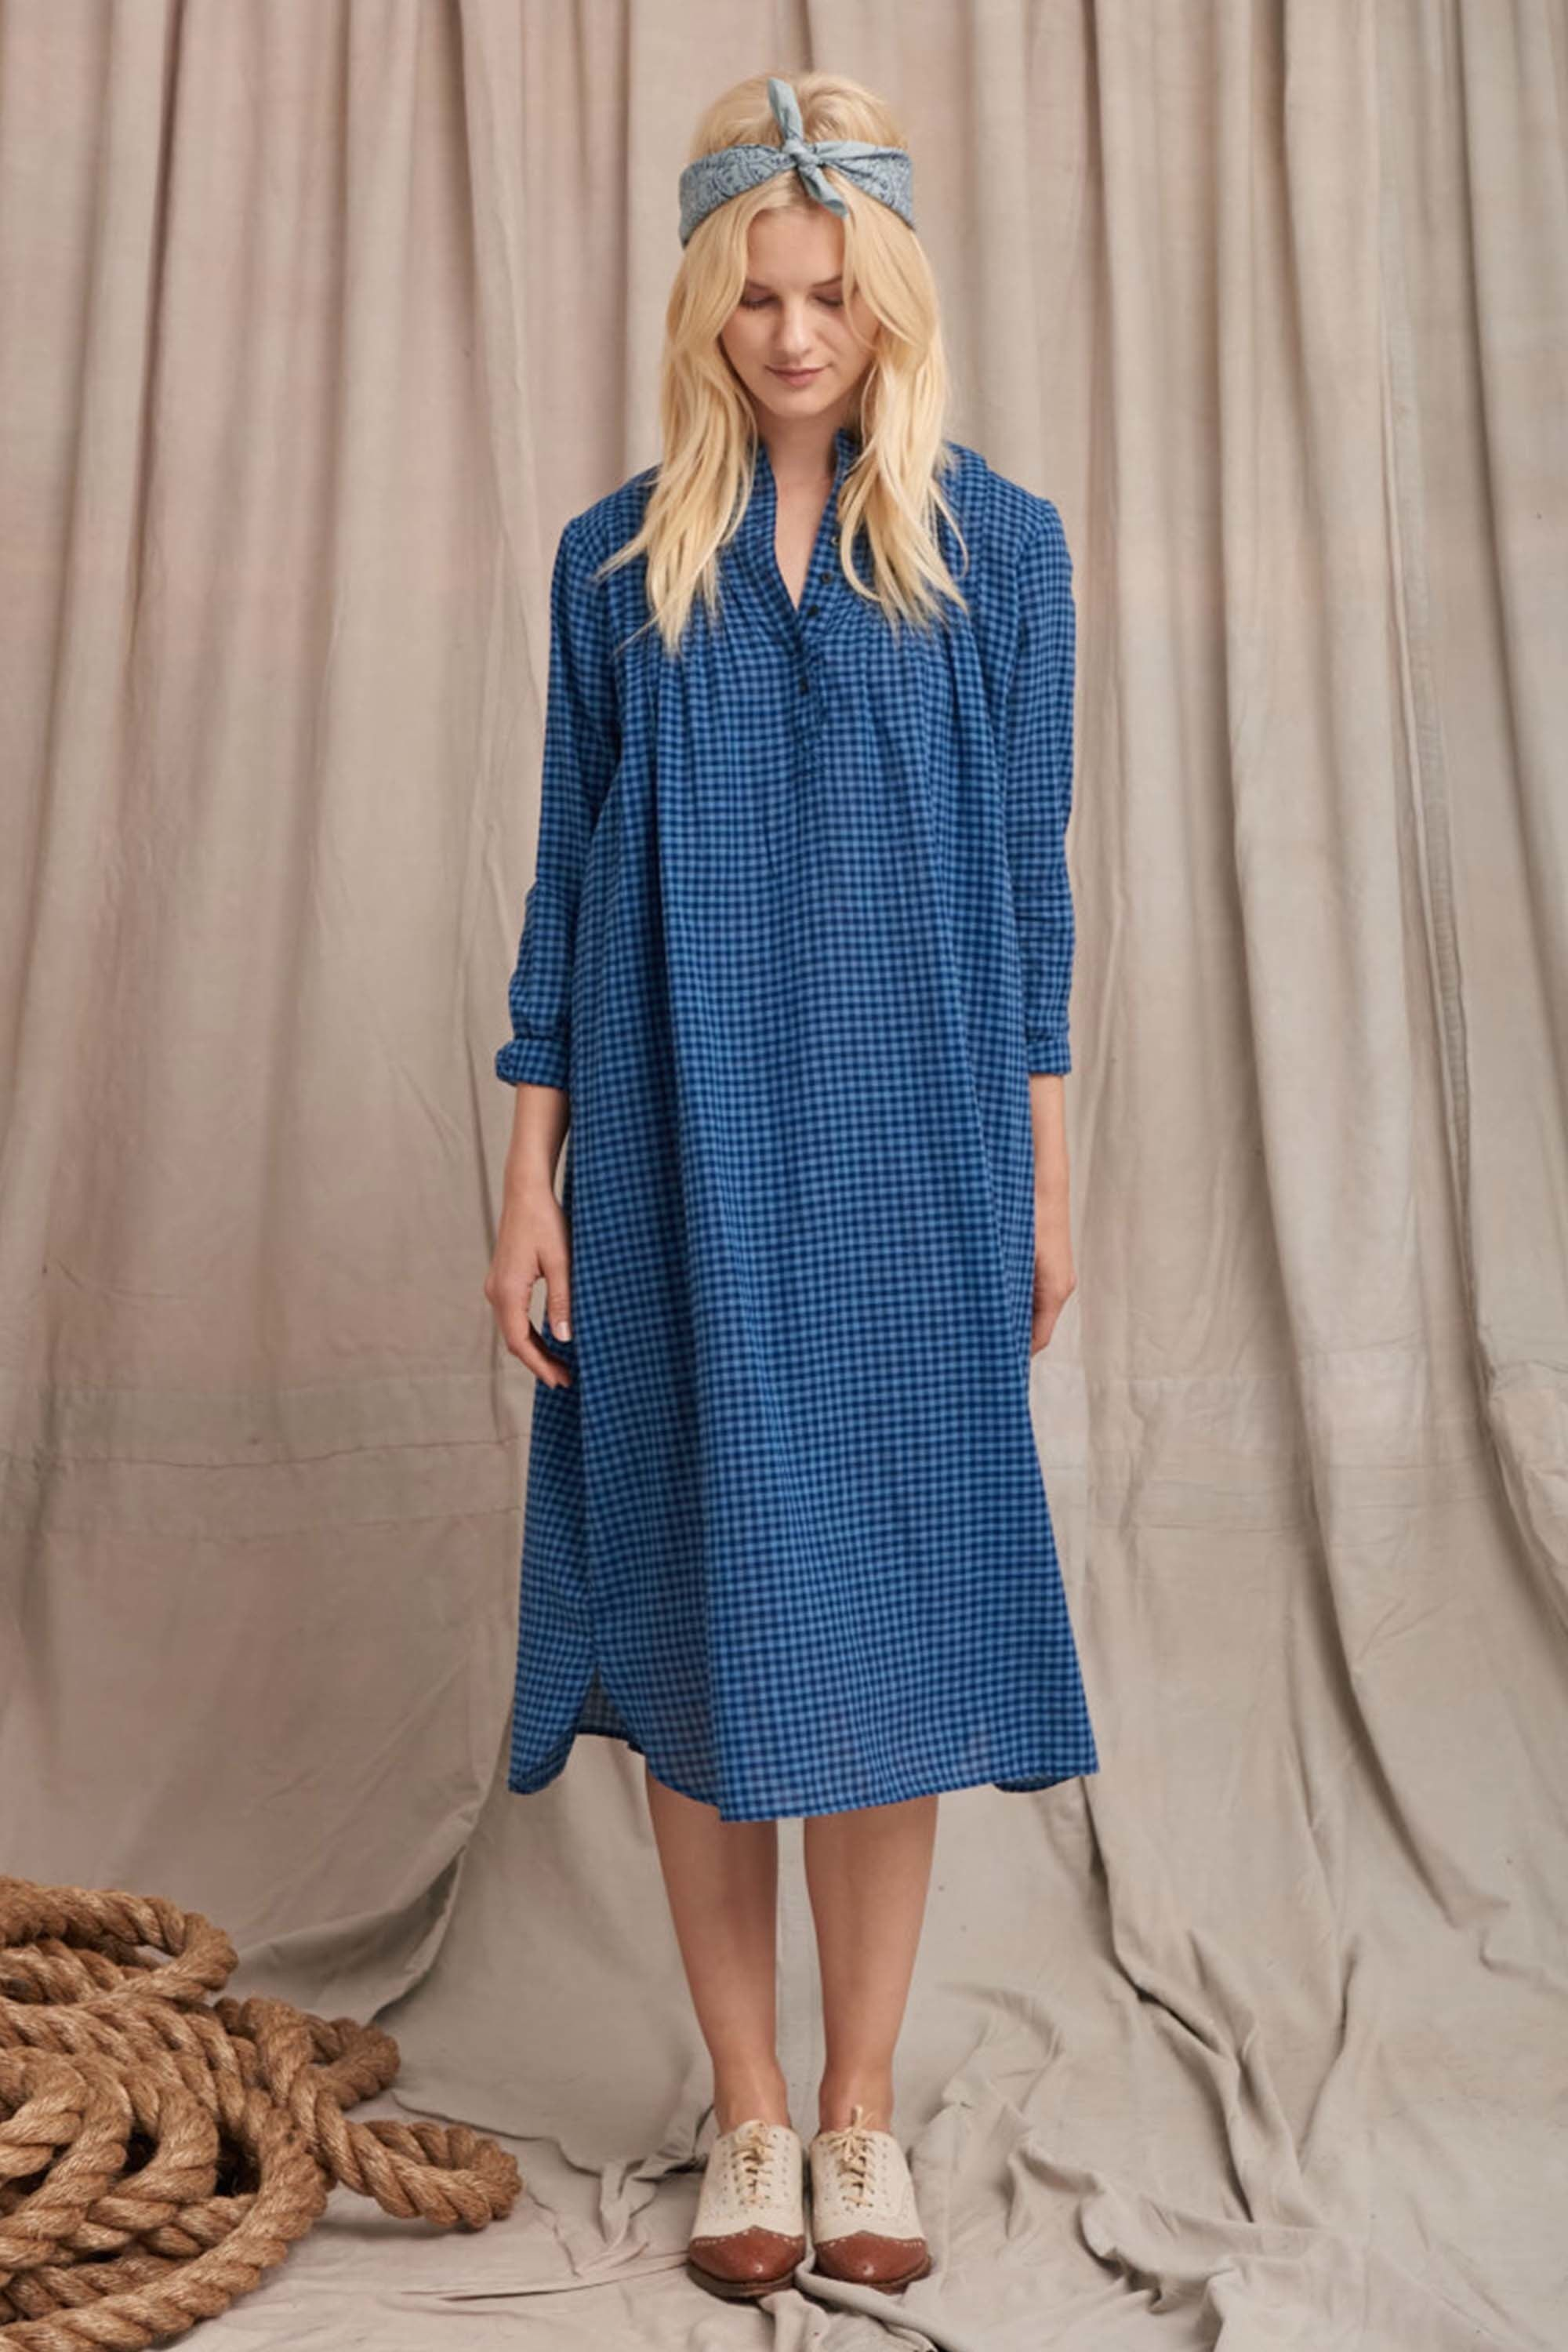 The Great - Spring 2017 Ready-to-Wear